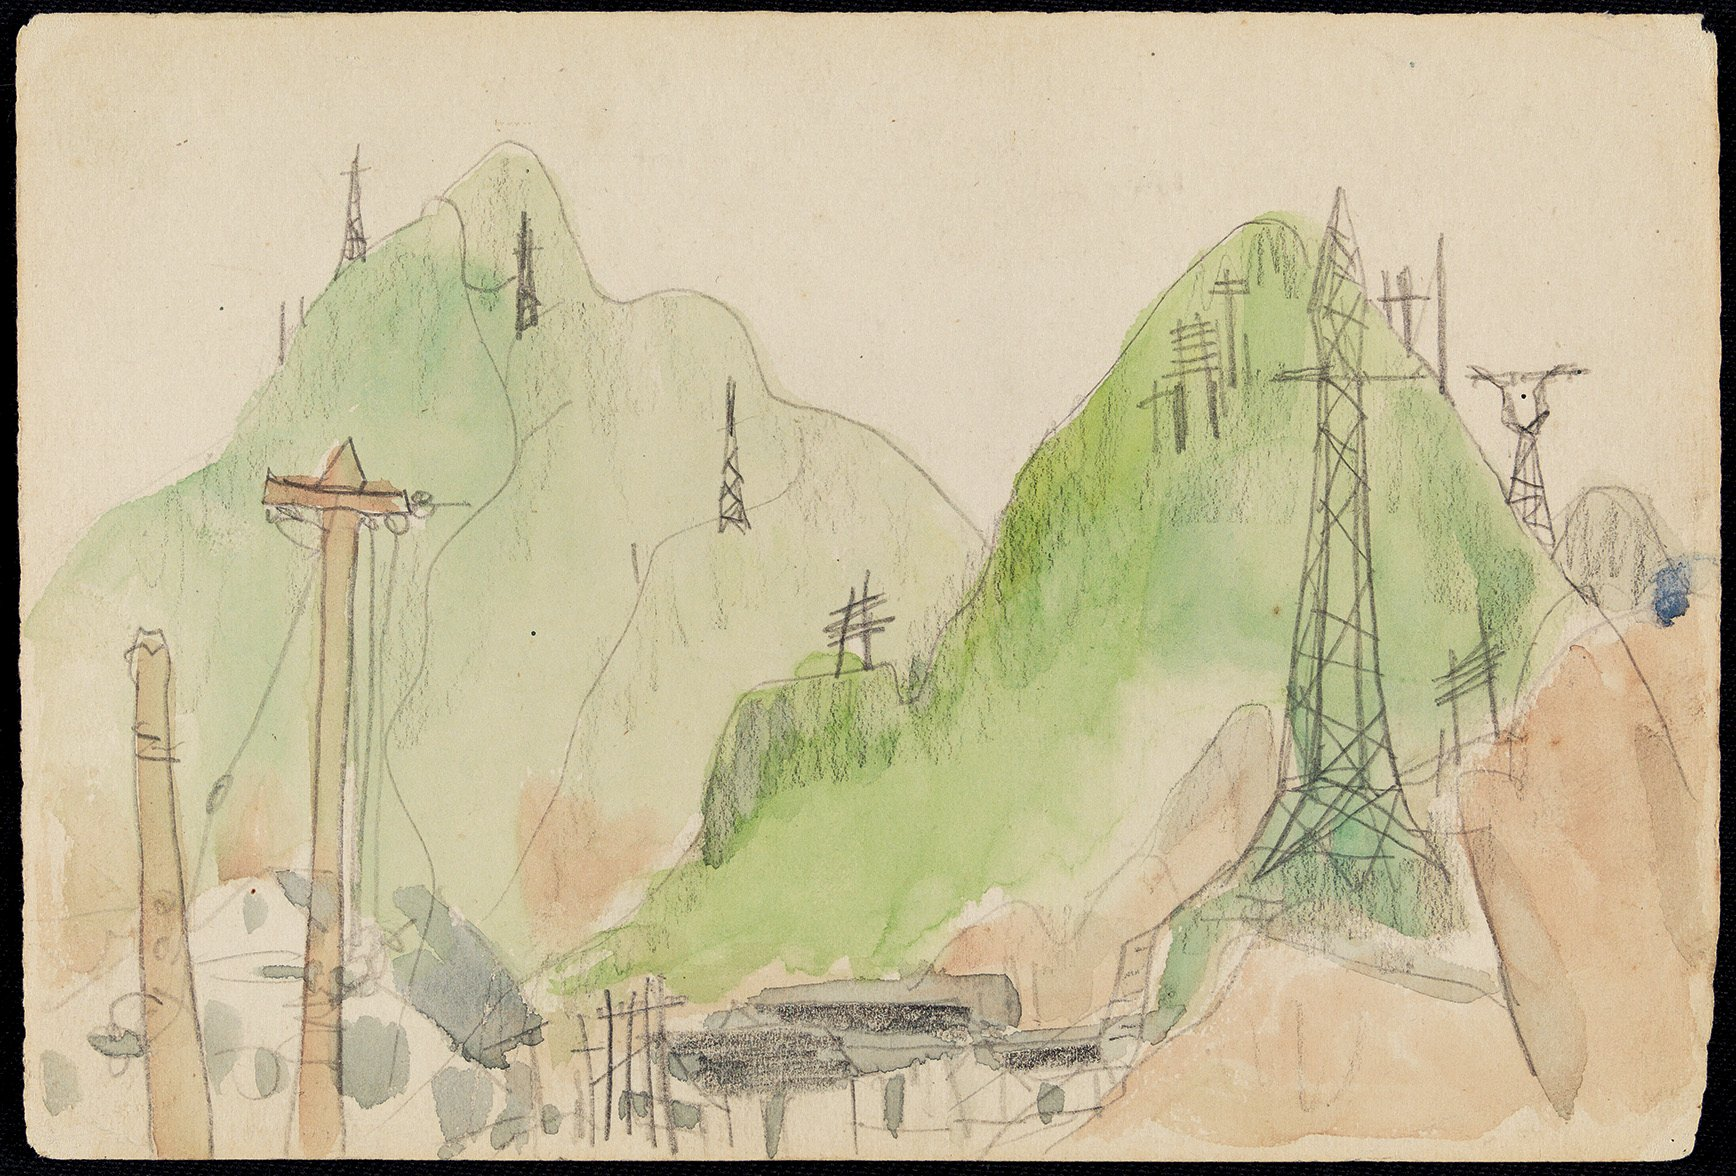 Lin Fengmian, <em>Village Construction</em> (1950s) (M.K. Lau Collection)